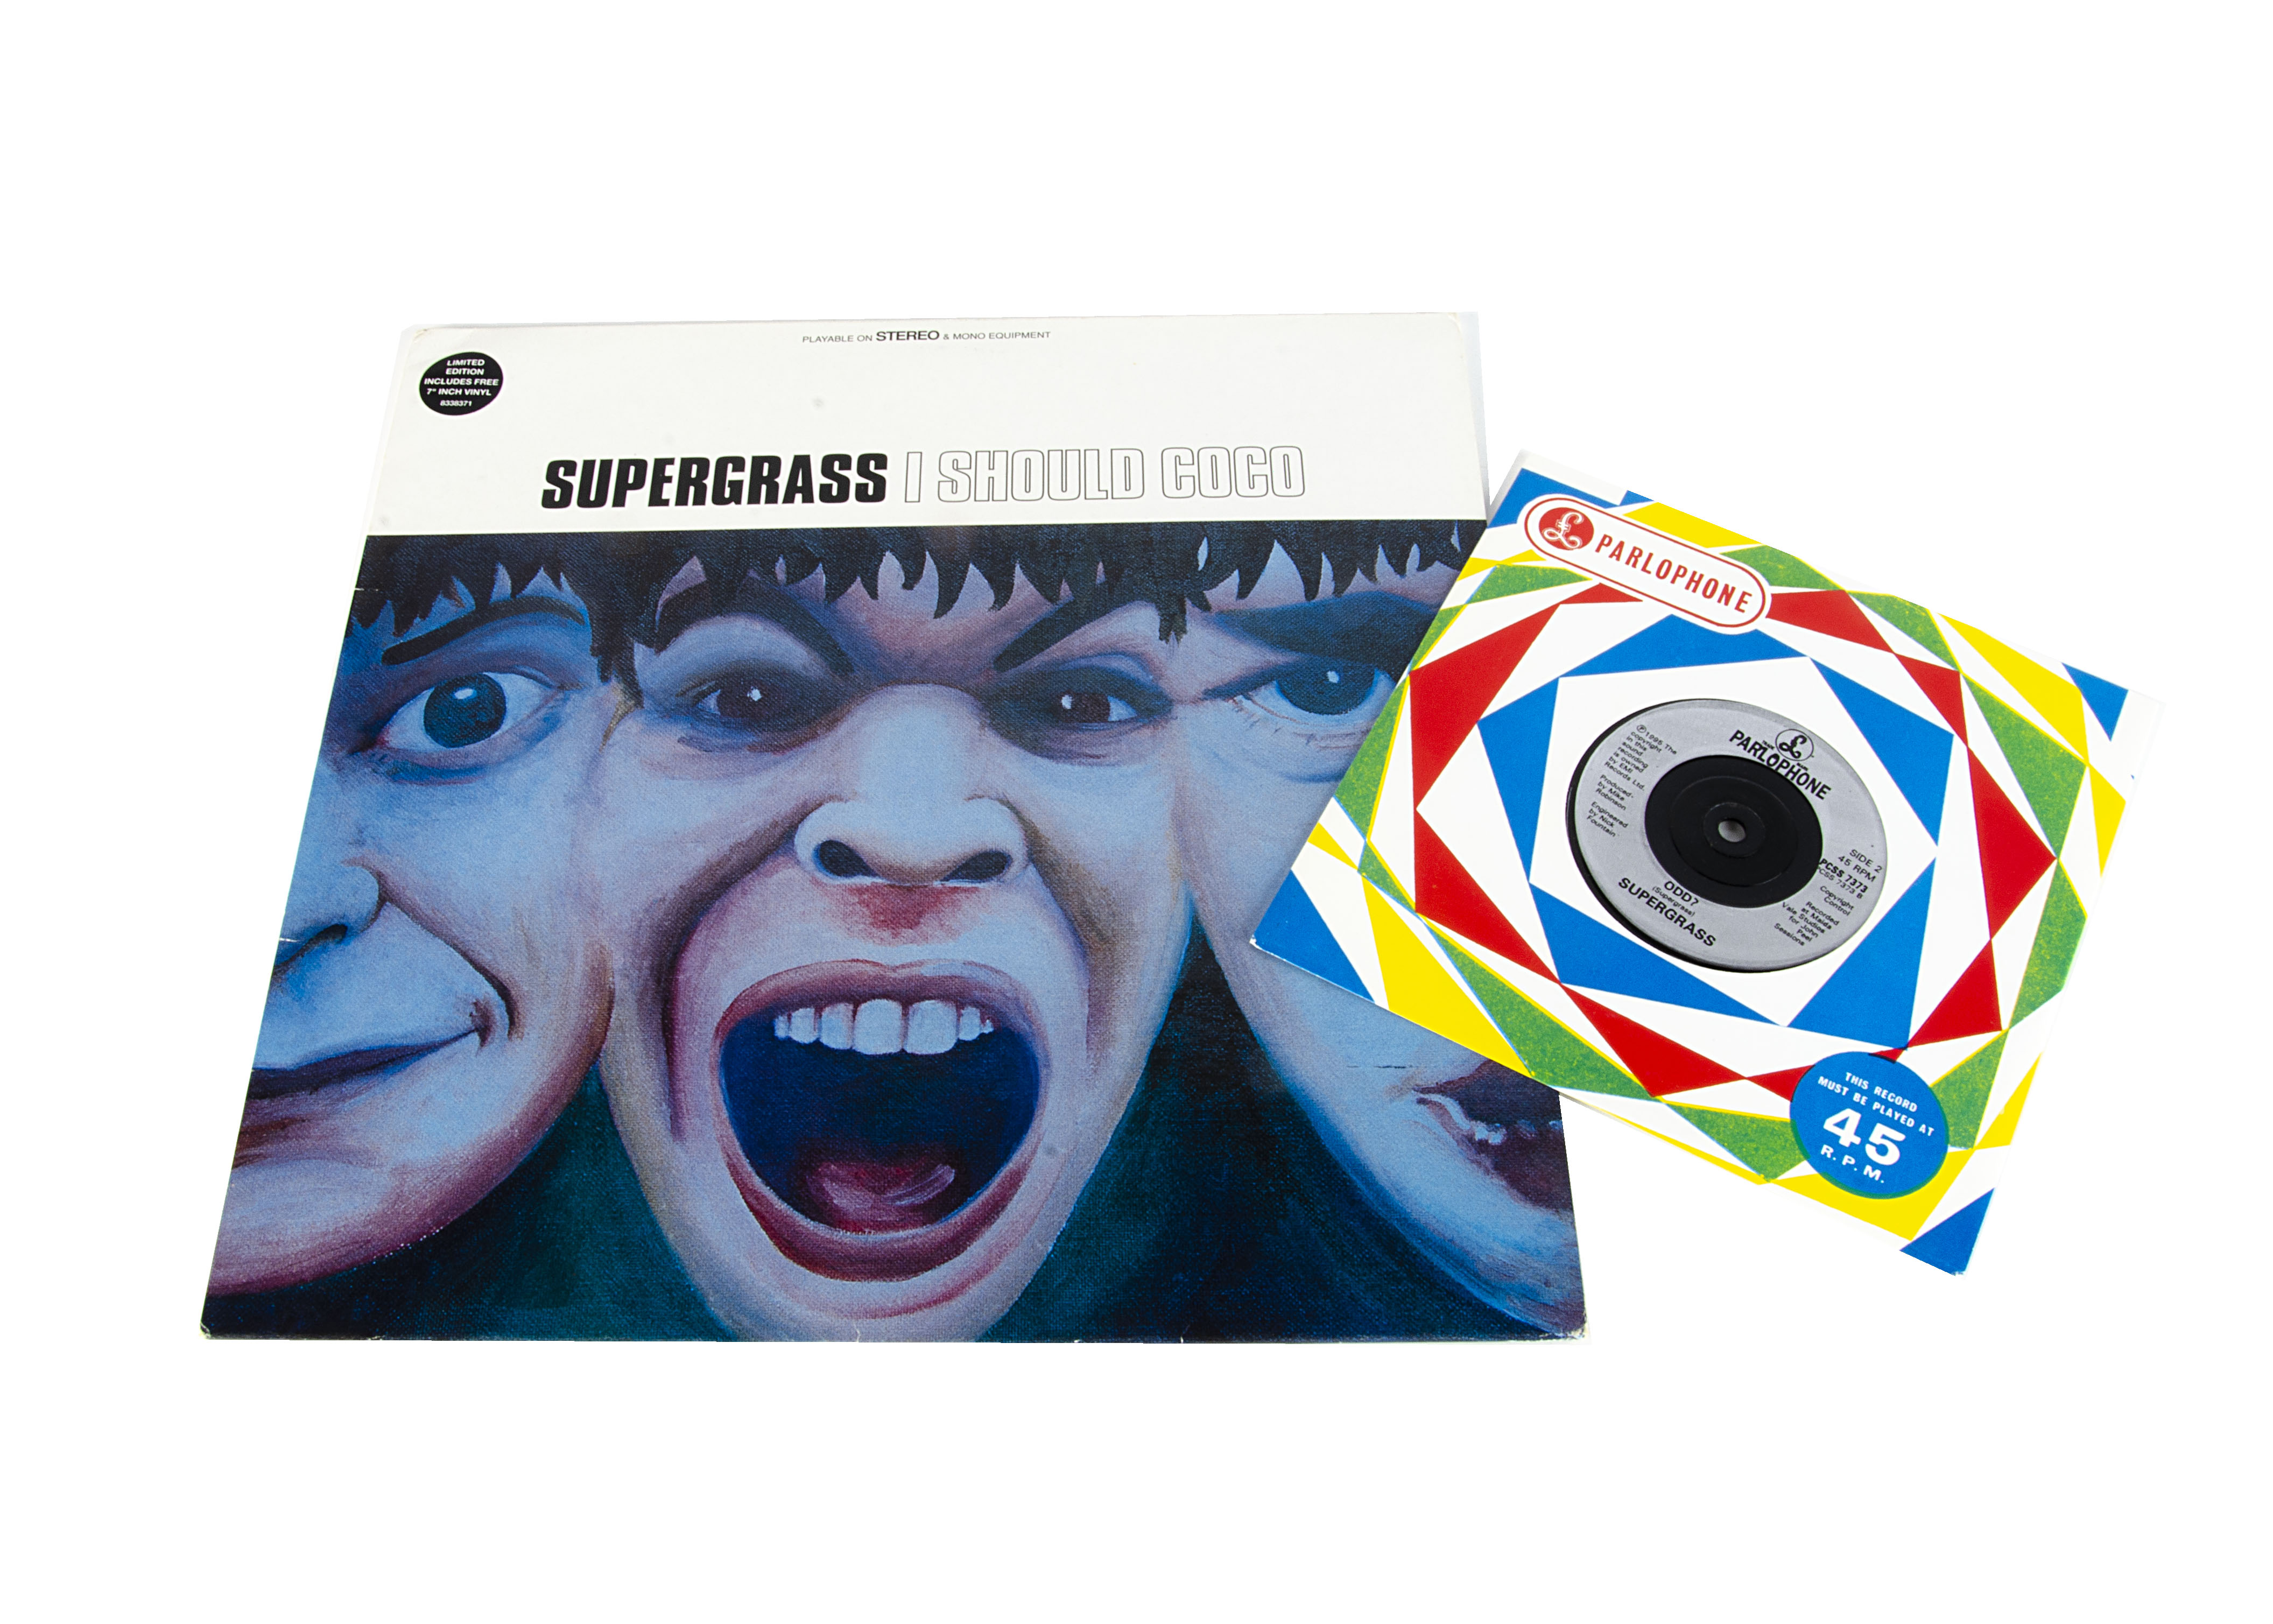 Supergrass LP, I Should Coco - Original UK Release 1995 on Parlophone (PCSX 7373) - with Sticker,